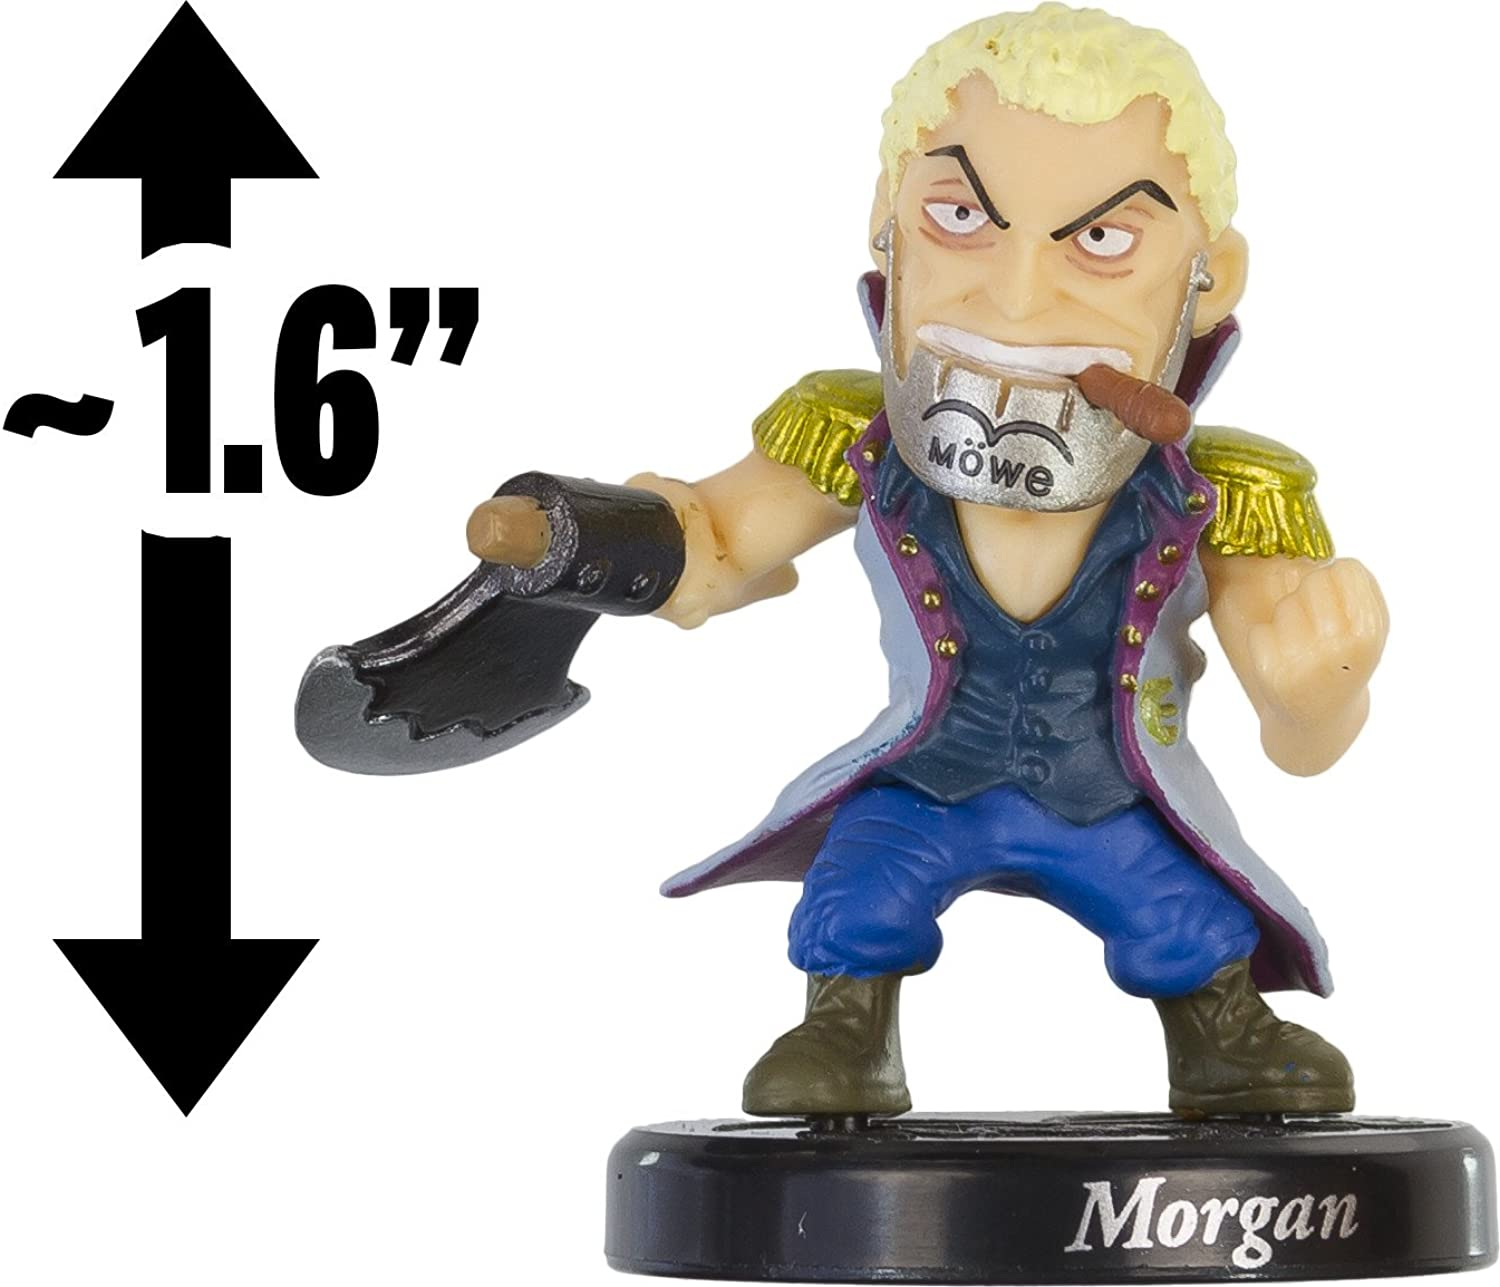 Morgan 1.6  MiniFigure w  Stand  One Piece Collection  10th Anniversary Road to Becoming the King of Pirates Series (Japanese Import)